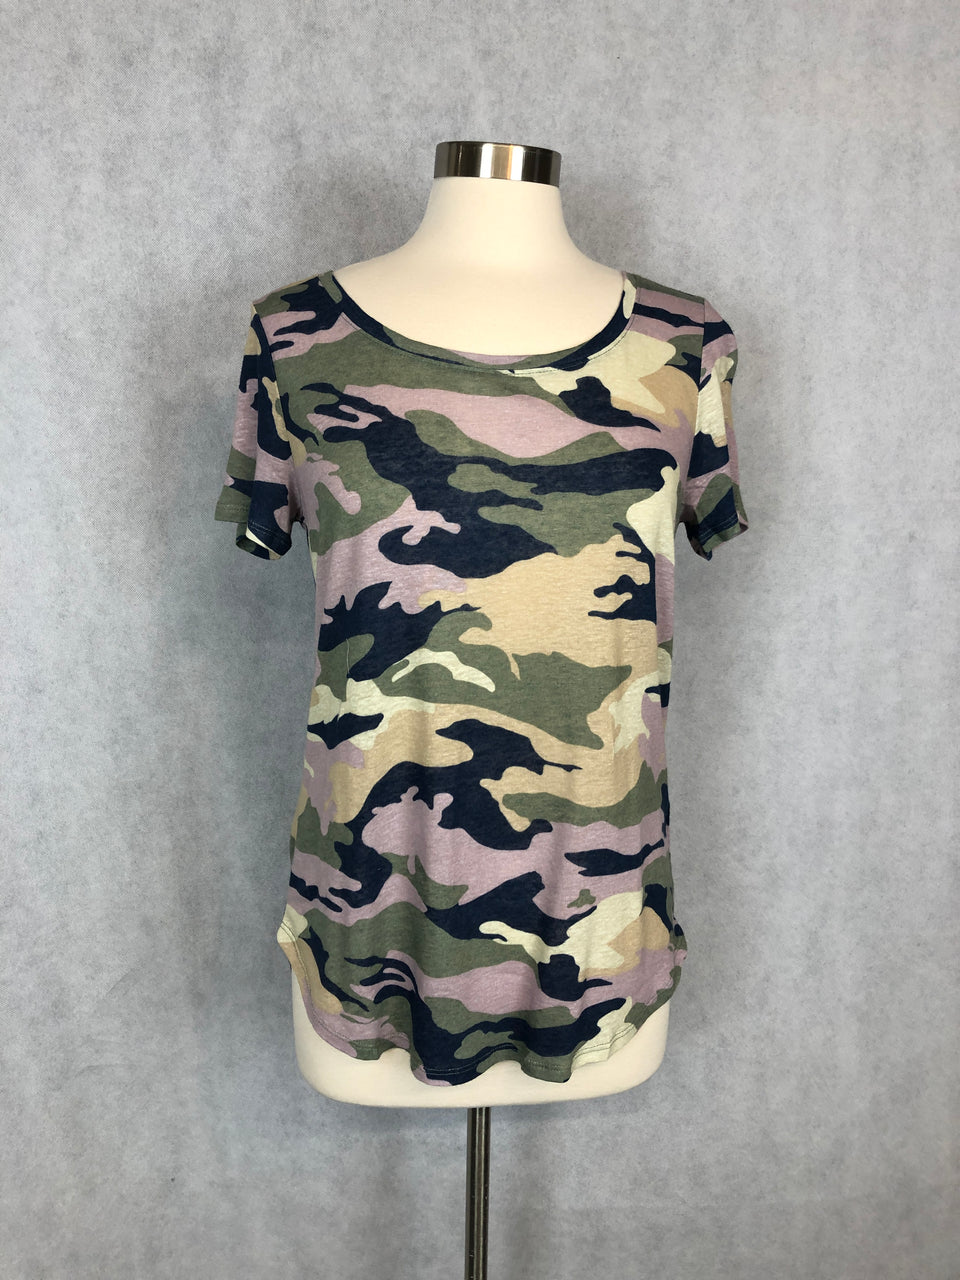 NO AMMO FOR THIS CAMO TEE